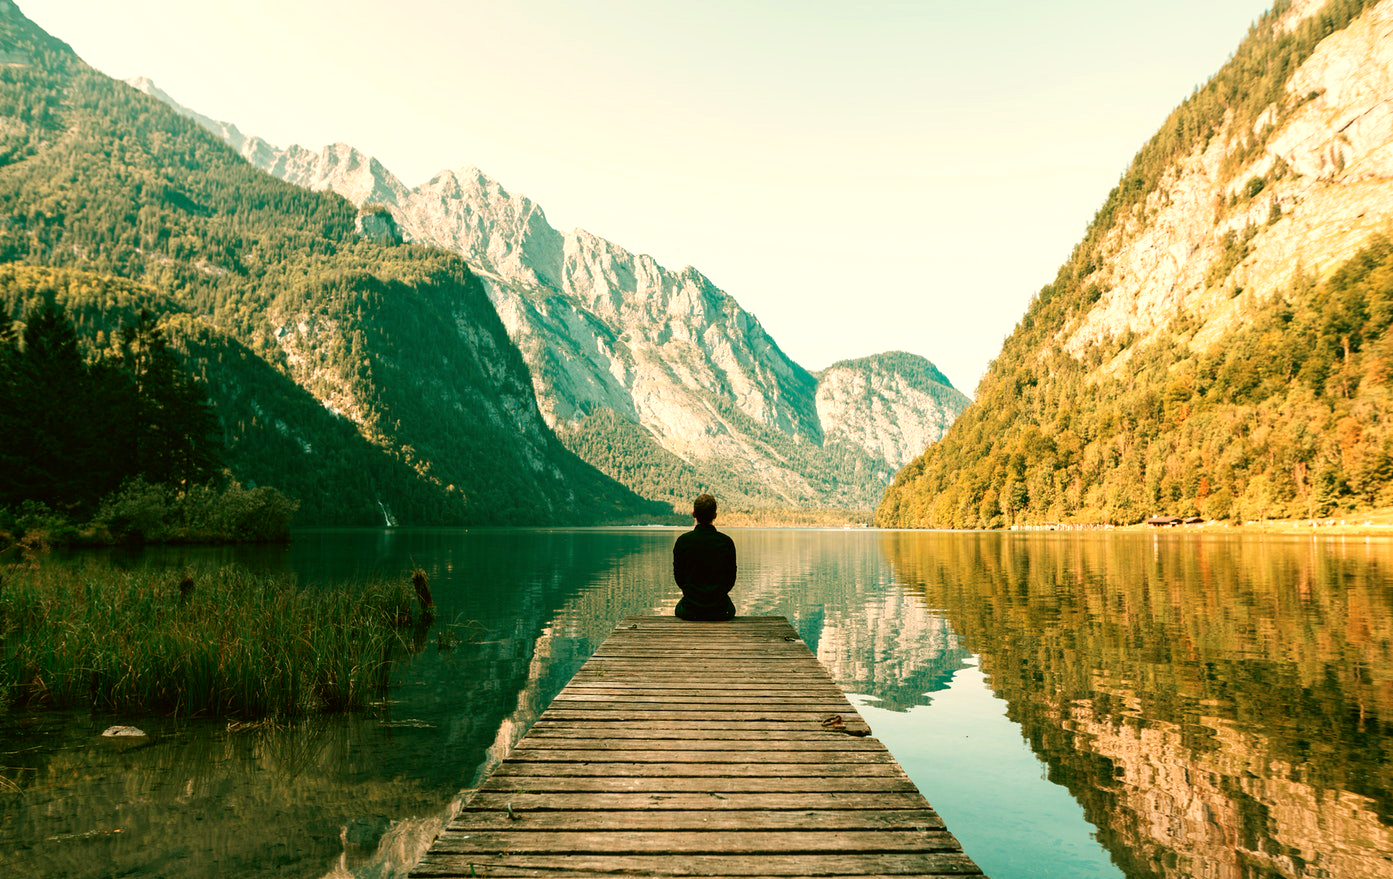 A man sitting on the end of a dock facing a lake and mountains